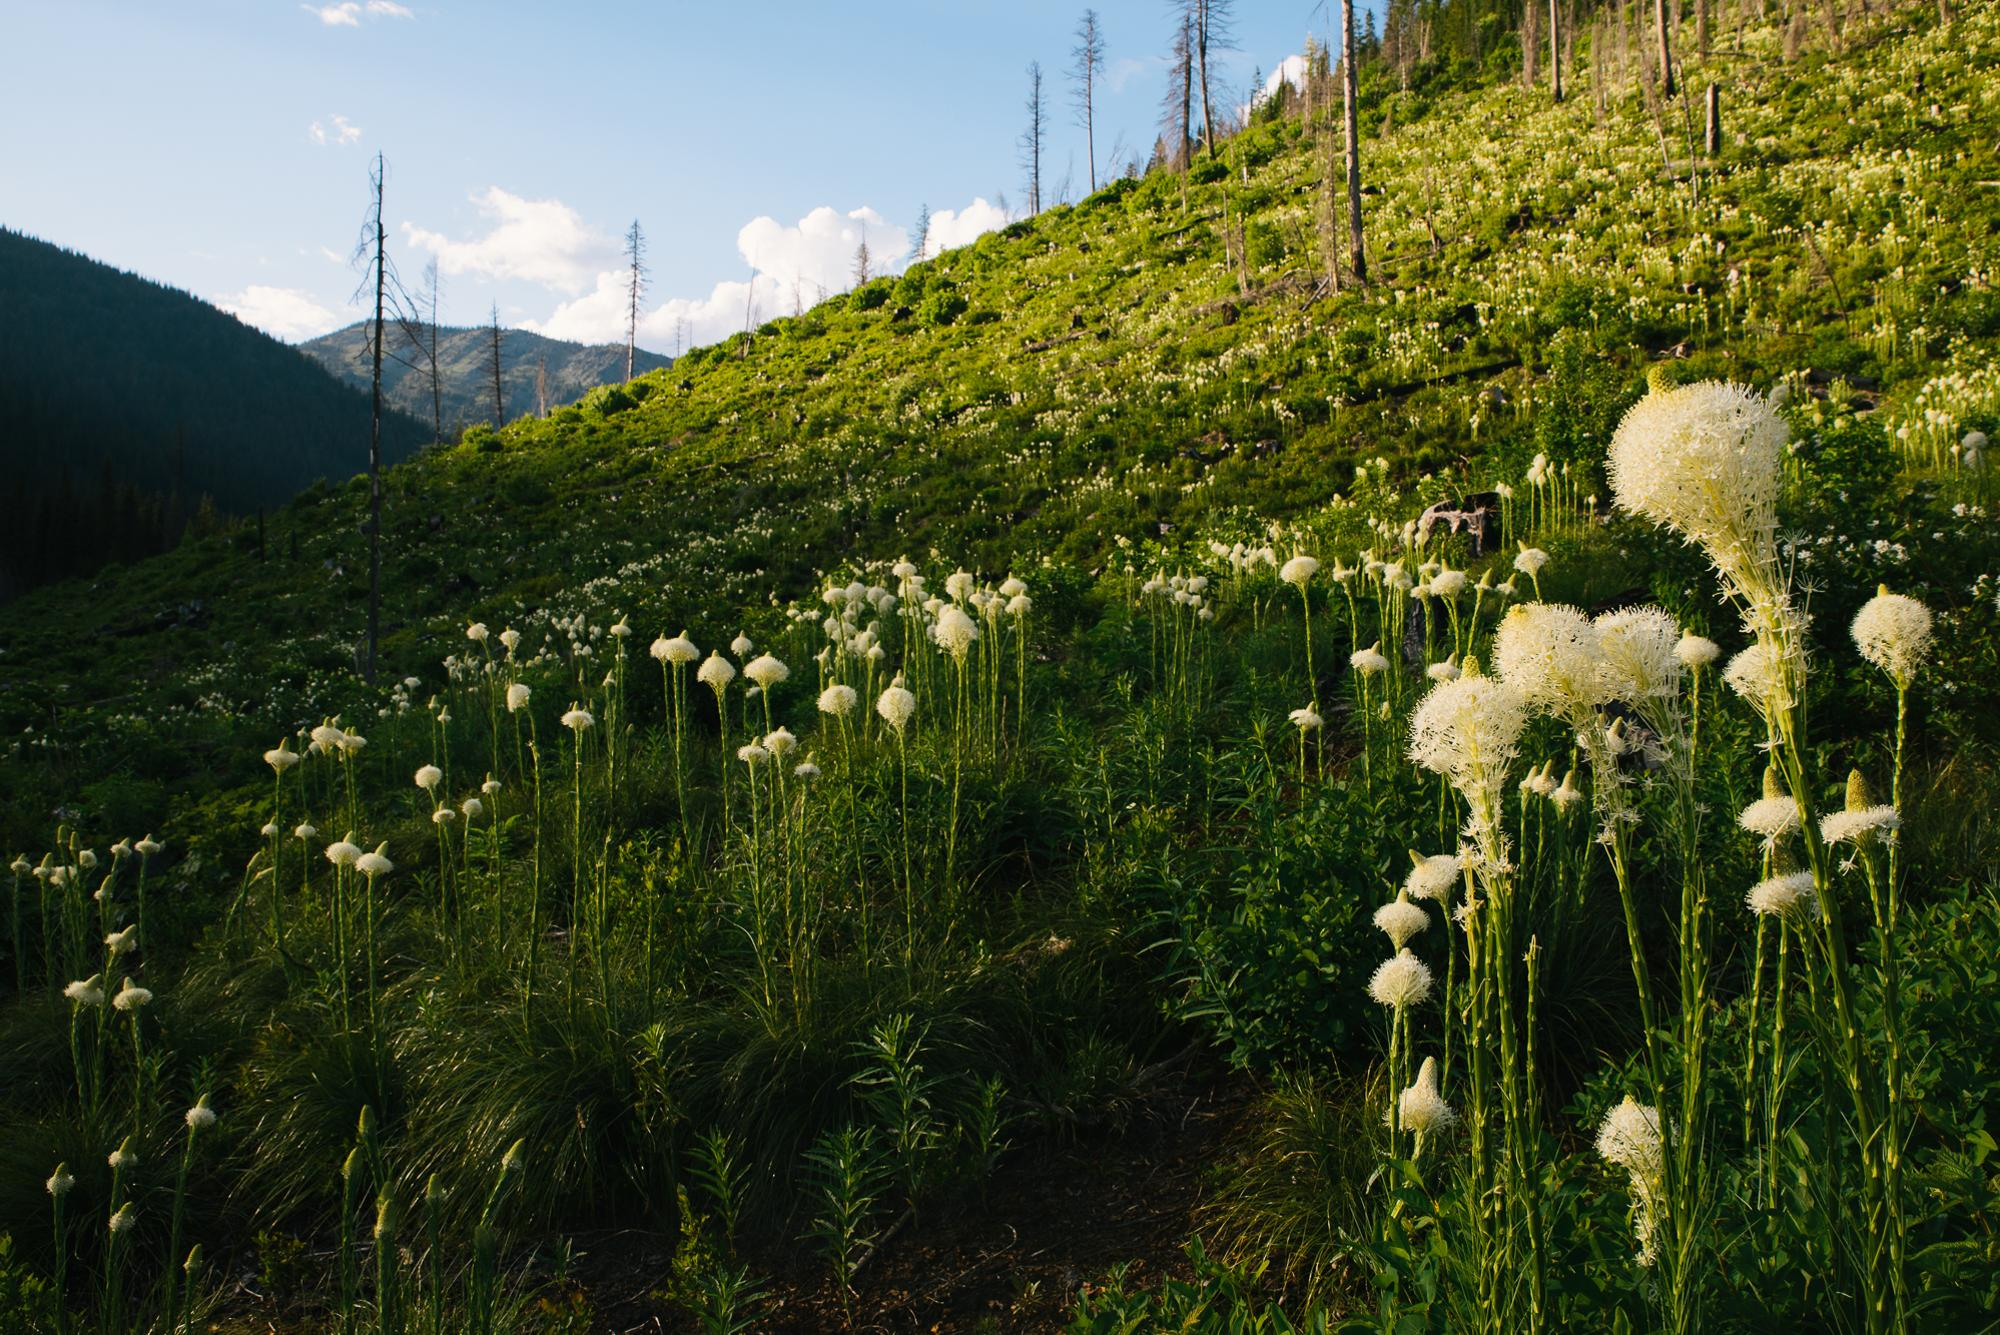 This Bear Grass field was unbelievable (Spencer Harding)